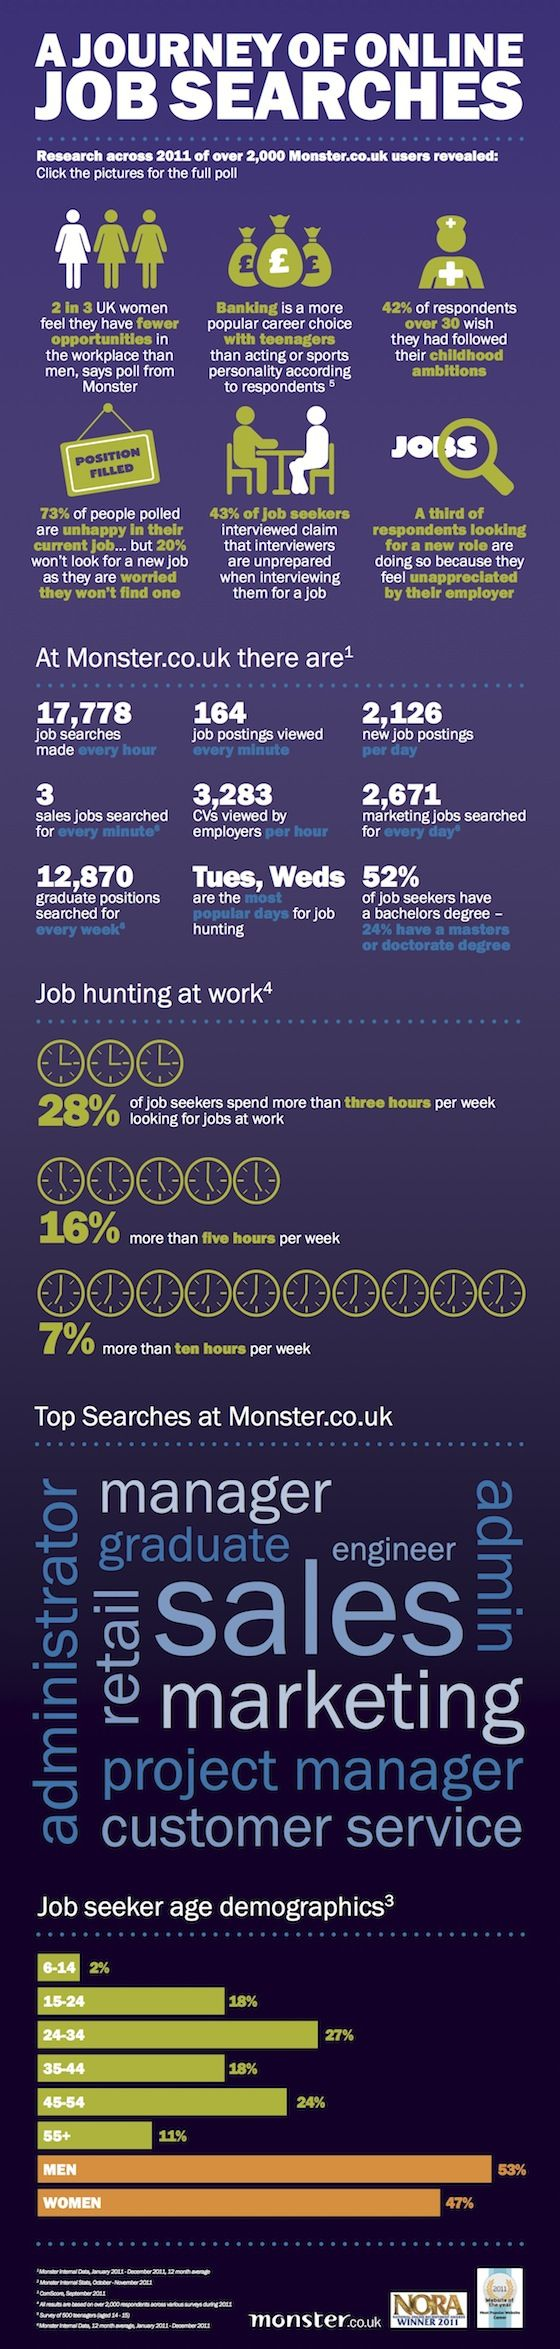 A journey of online job searches 18